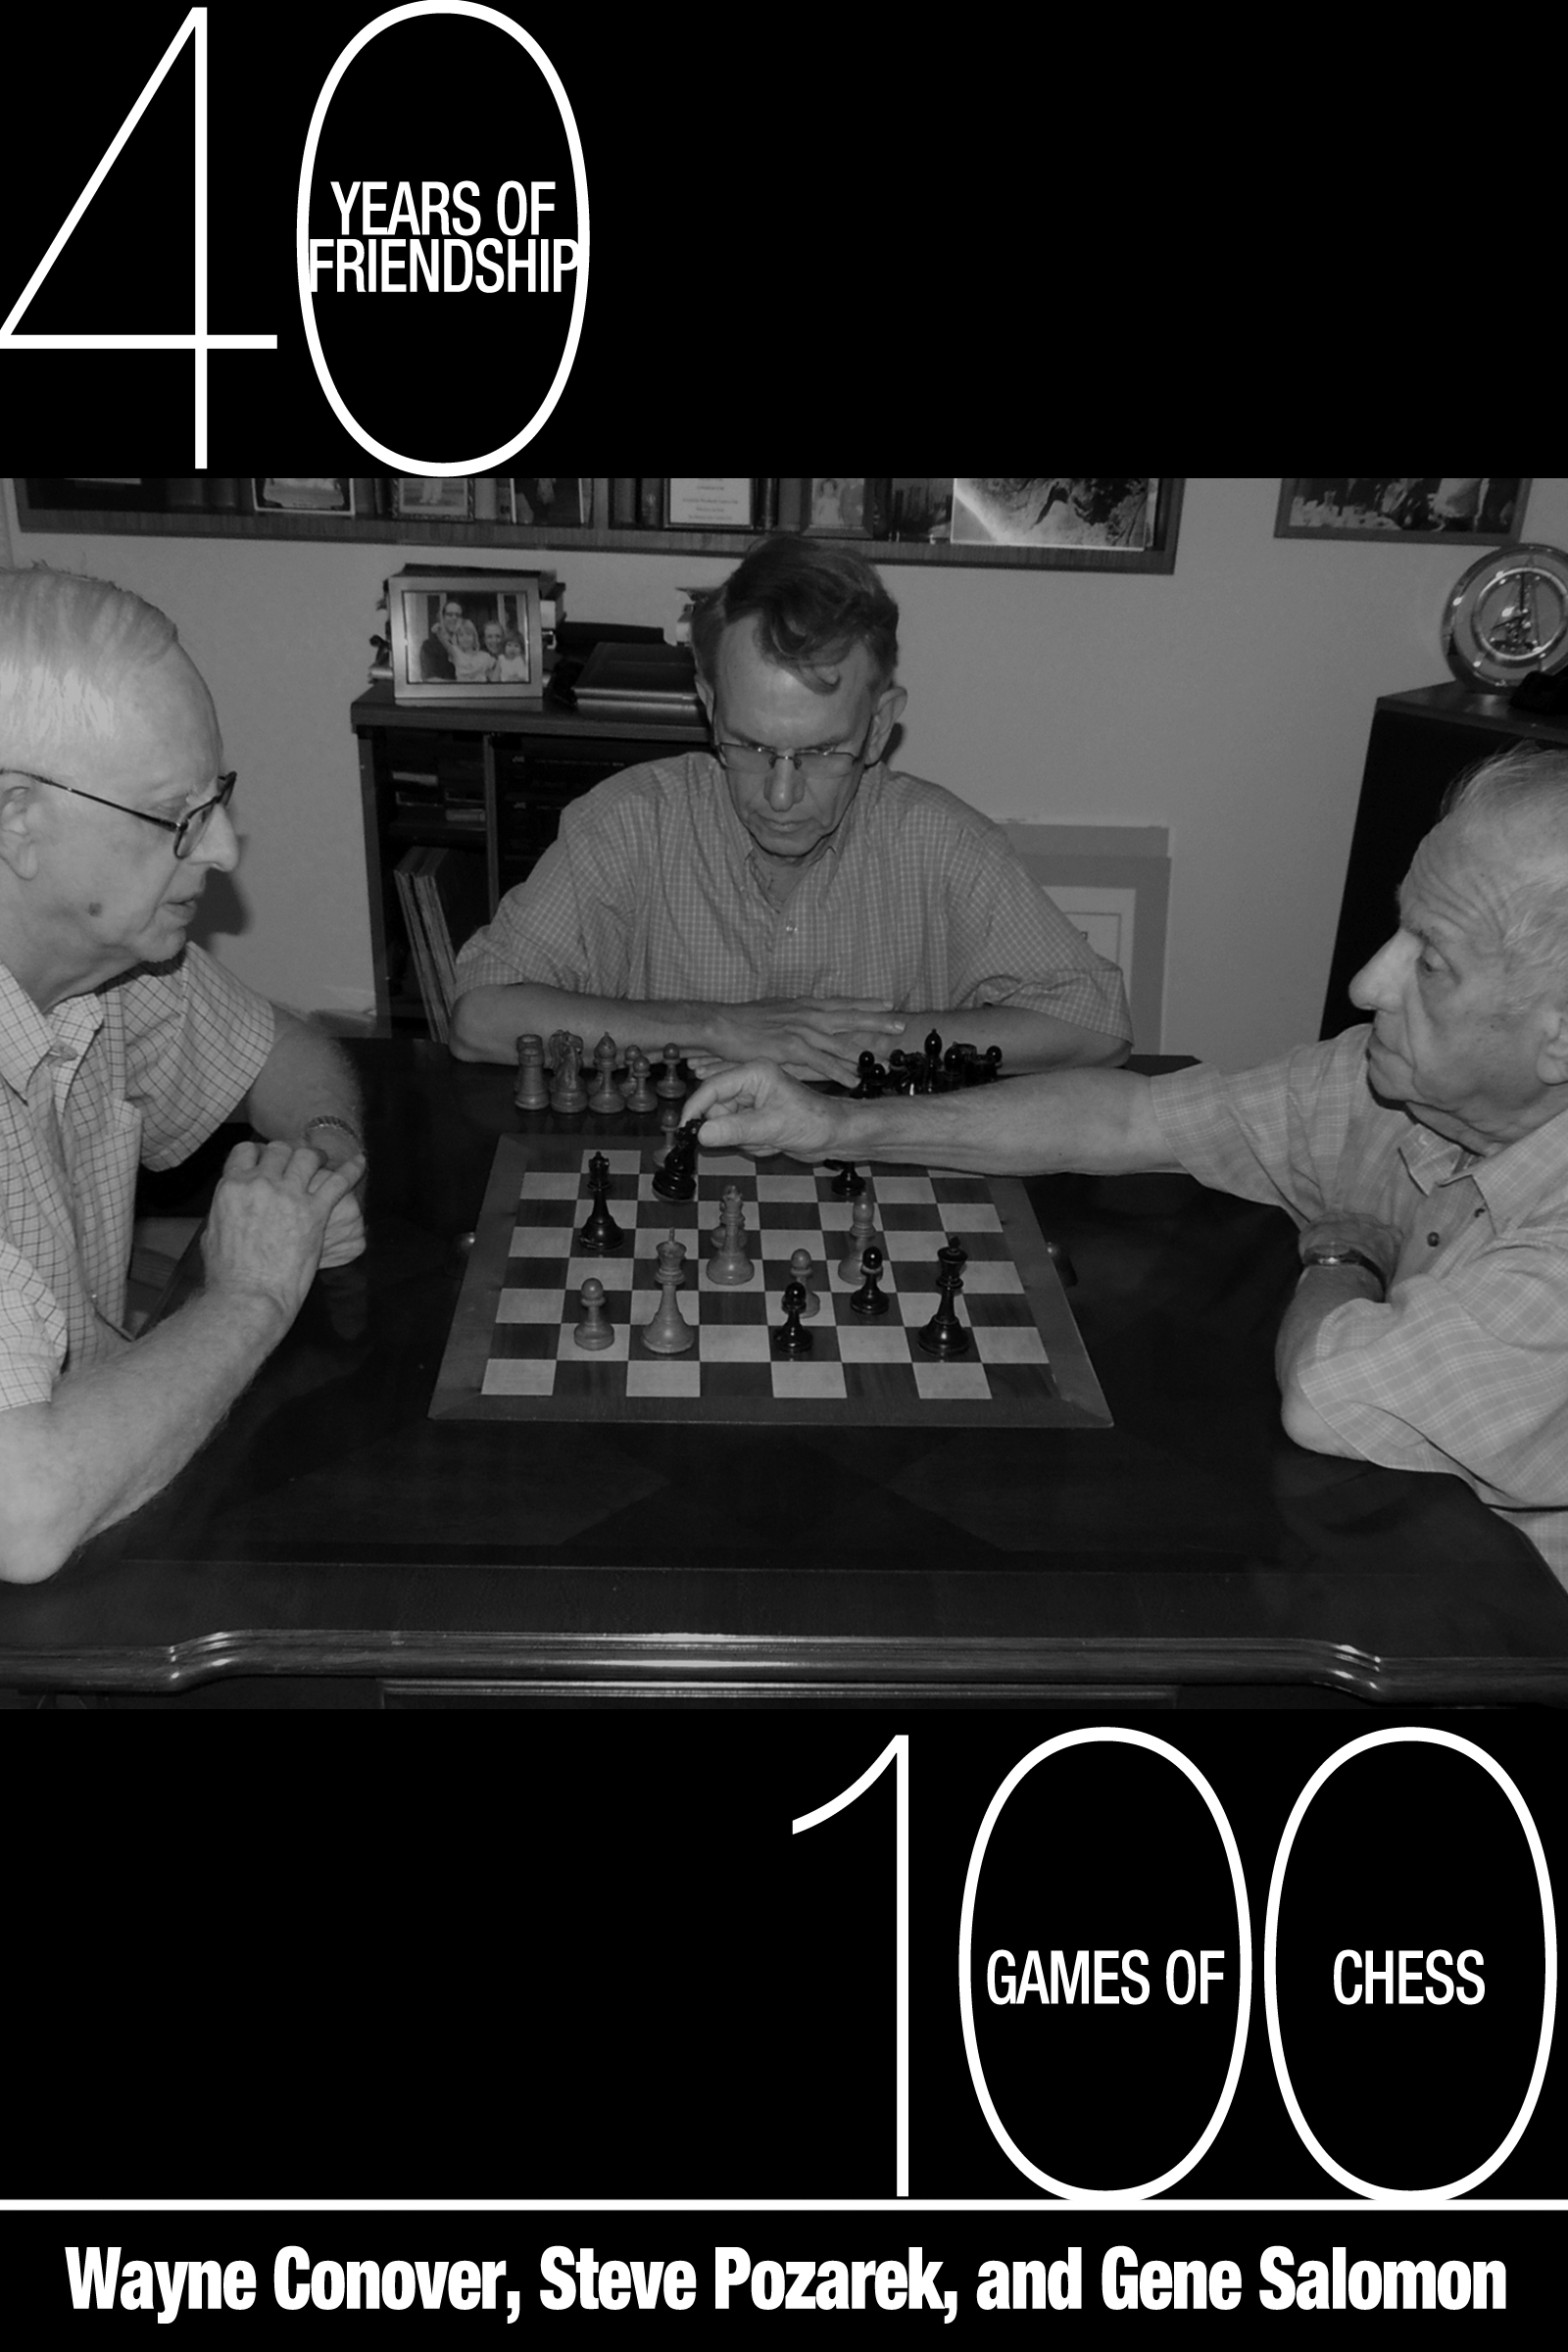 40 Years of Friendship – 100 Games of Chess